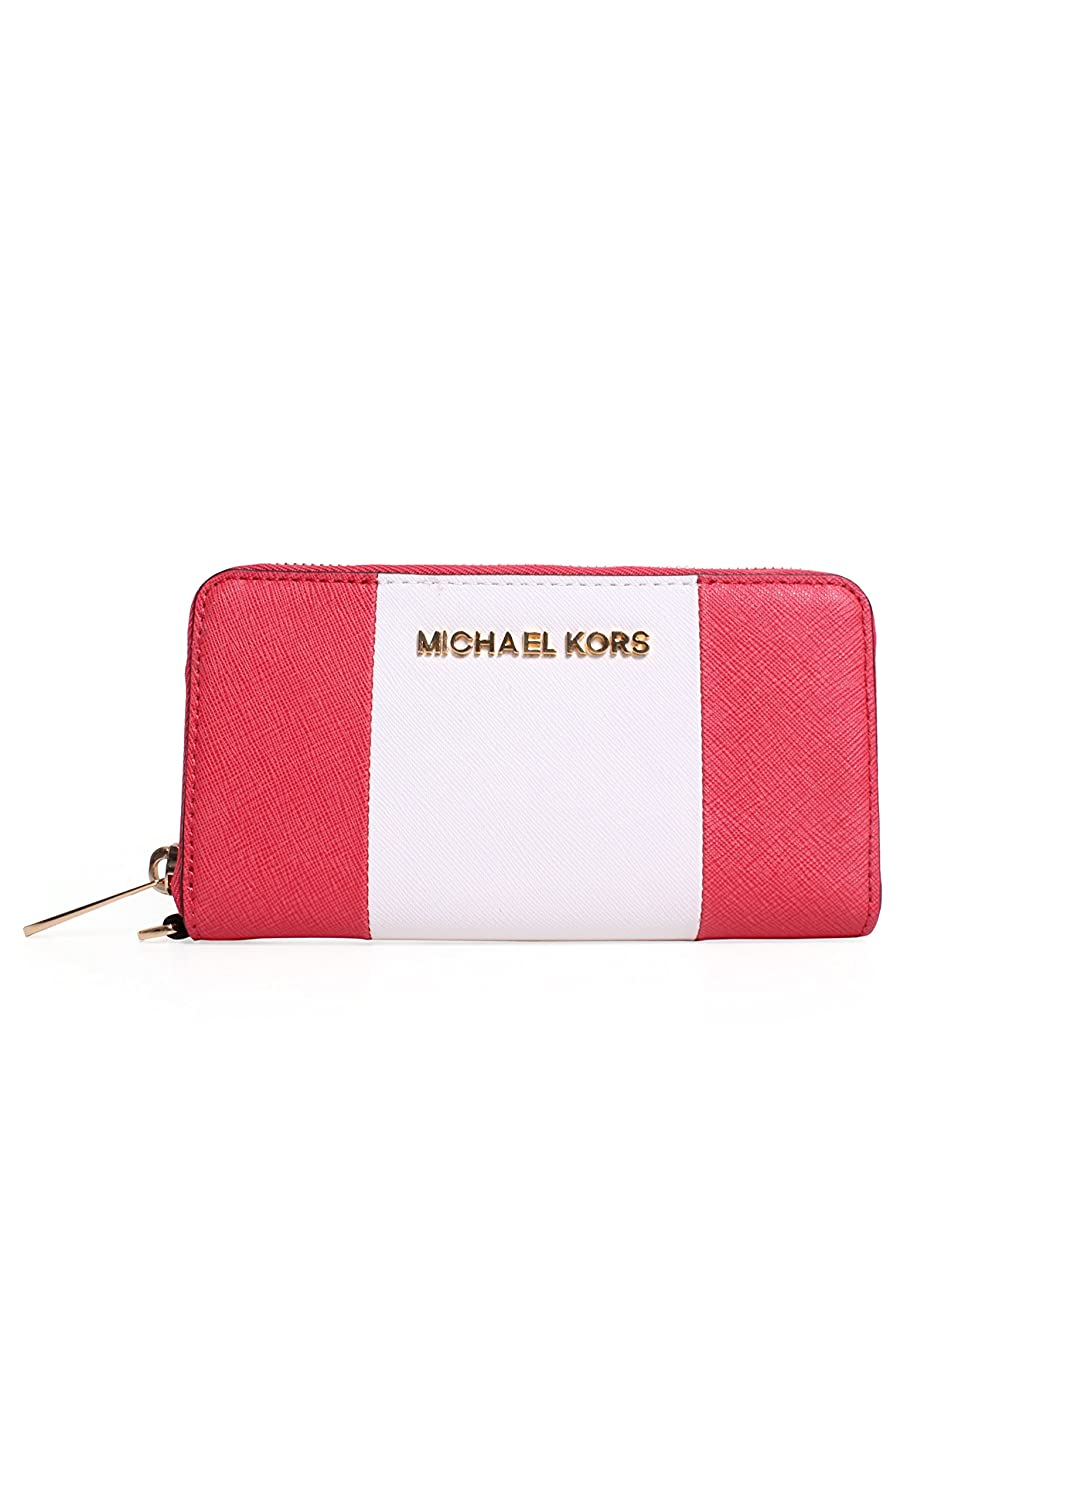 daa23bc0996e Amazon.com: Michael Kors Jet Set Travel Center Stripe Large Multifunction  Phone Wristlet in Watermelon/White: Cell Phones & Accessories